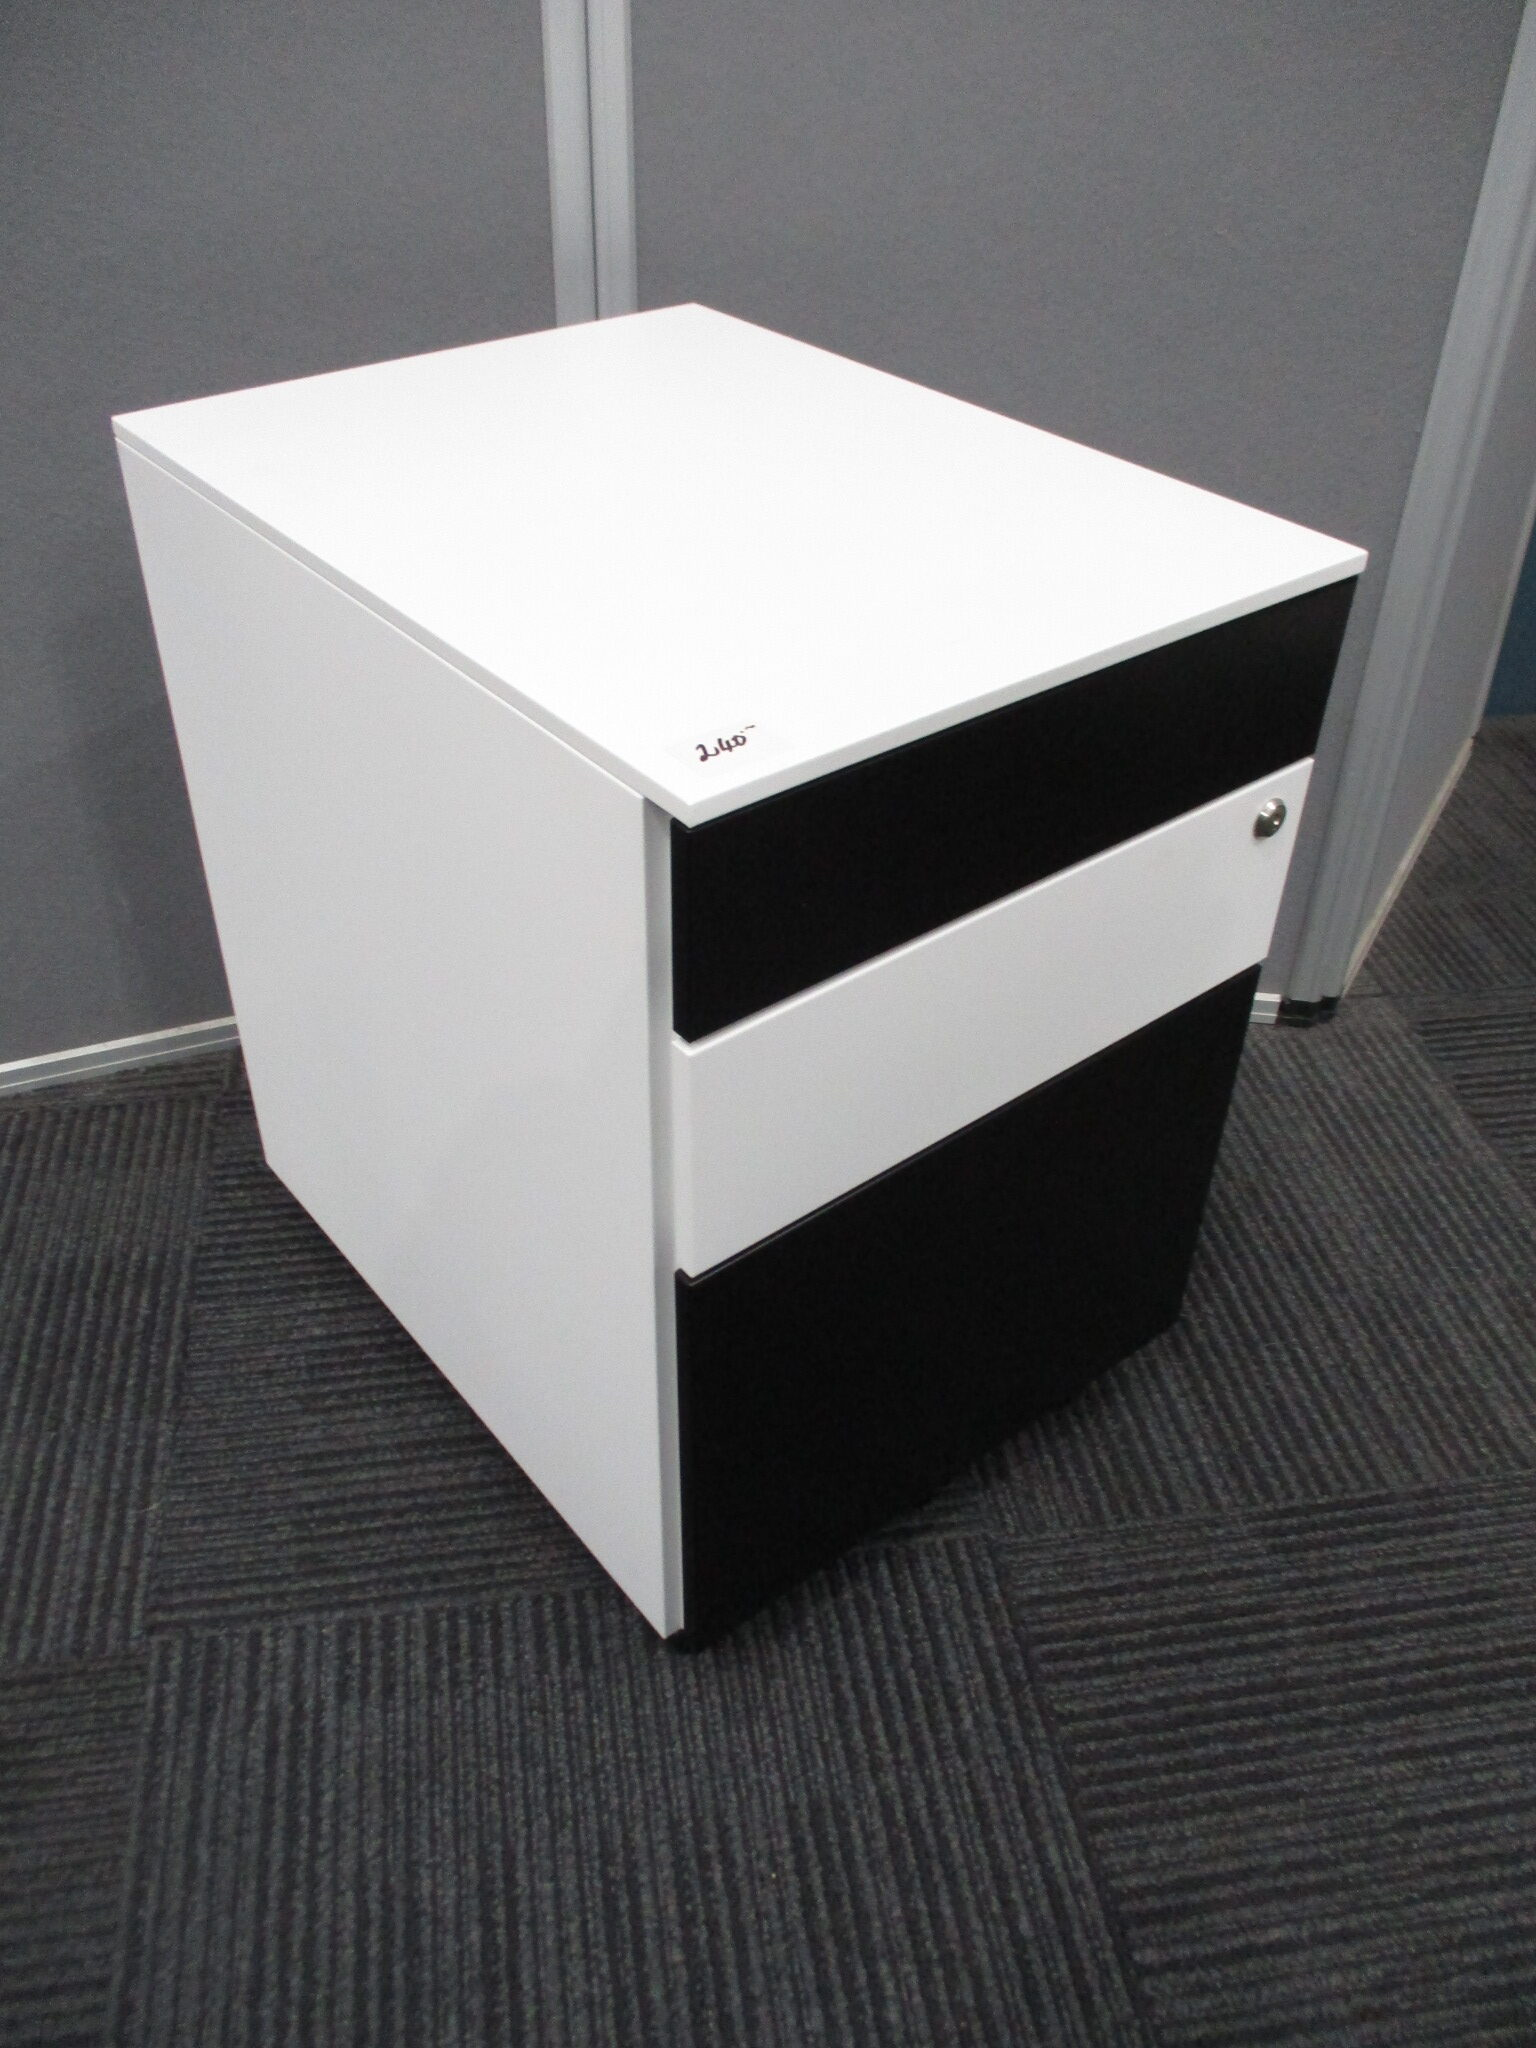 New Itsu Black and White Steel 3 Drawer Mobile Pedestal $240